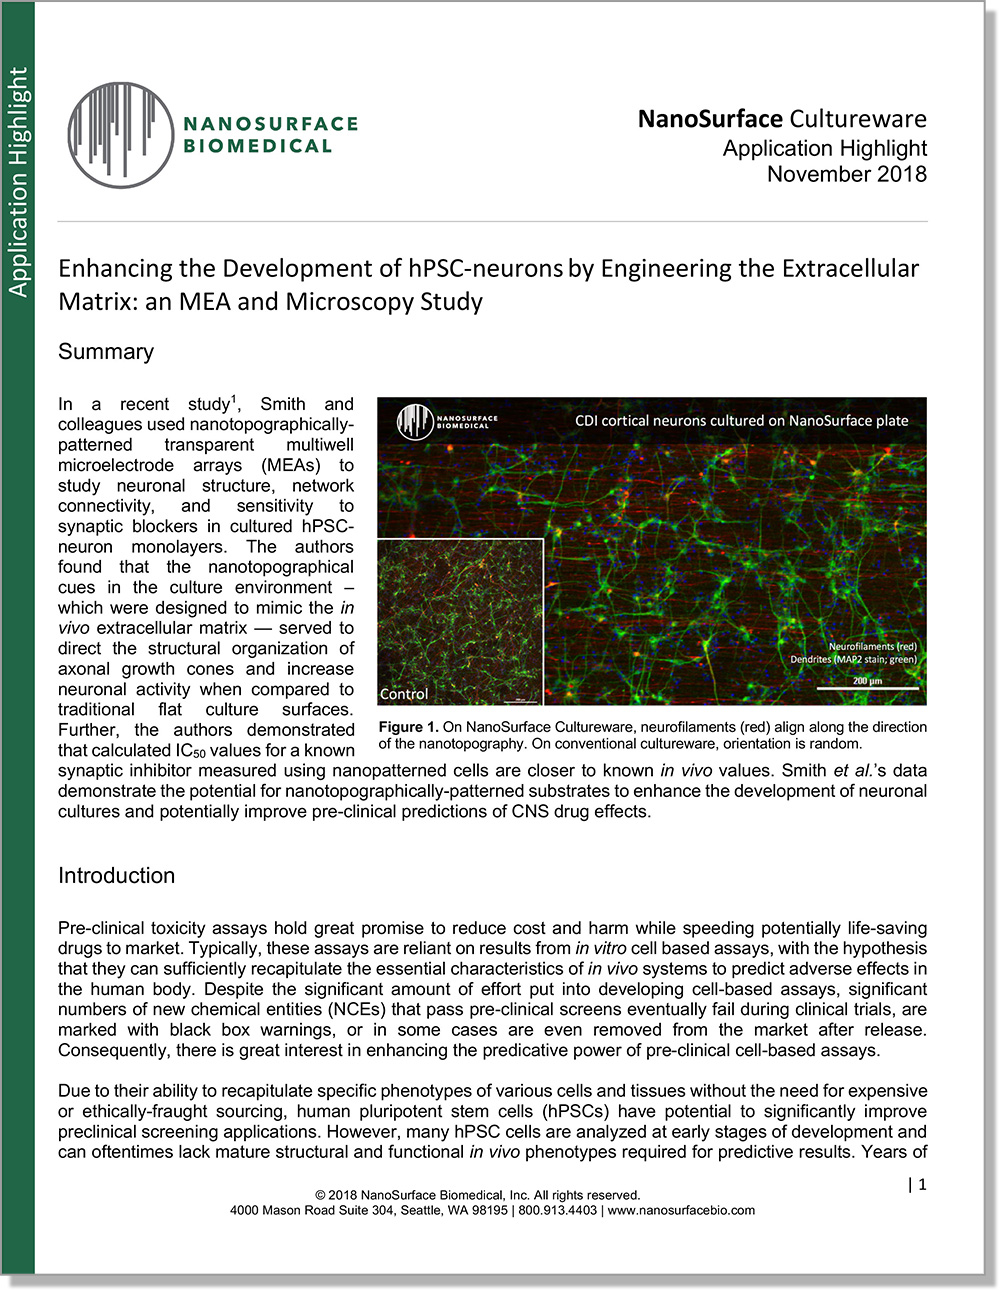 Enhancing the Development of hPSC-neurons by Engineering the Extracellular Matrix: an MEA and Microscopy Study - Nanotopographically patterned transparent multiwell microelectrode arrays (MEAs) were used to study neuronal structure, network connectivity, and sensitivity to synaptic blockers in cultured hPSCneuron monolayers.